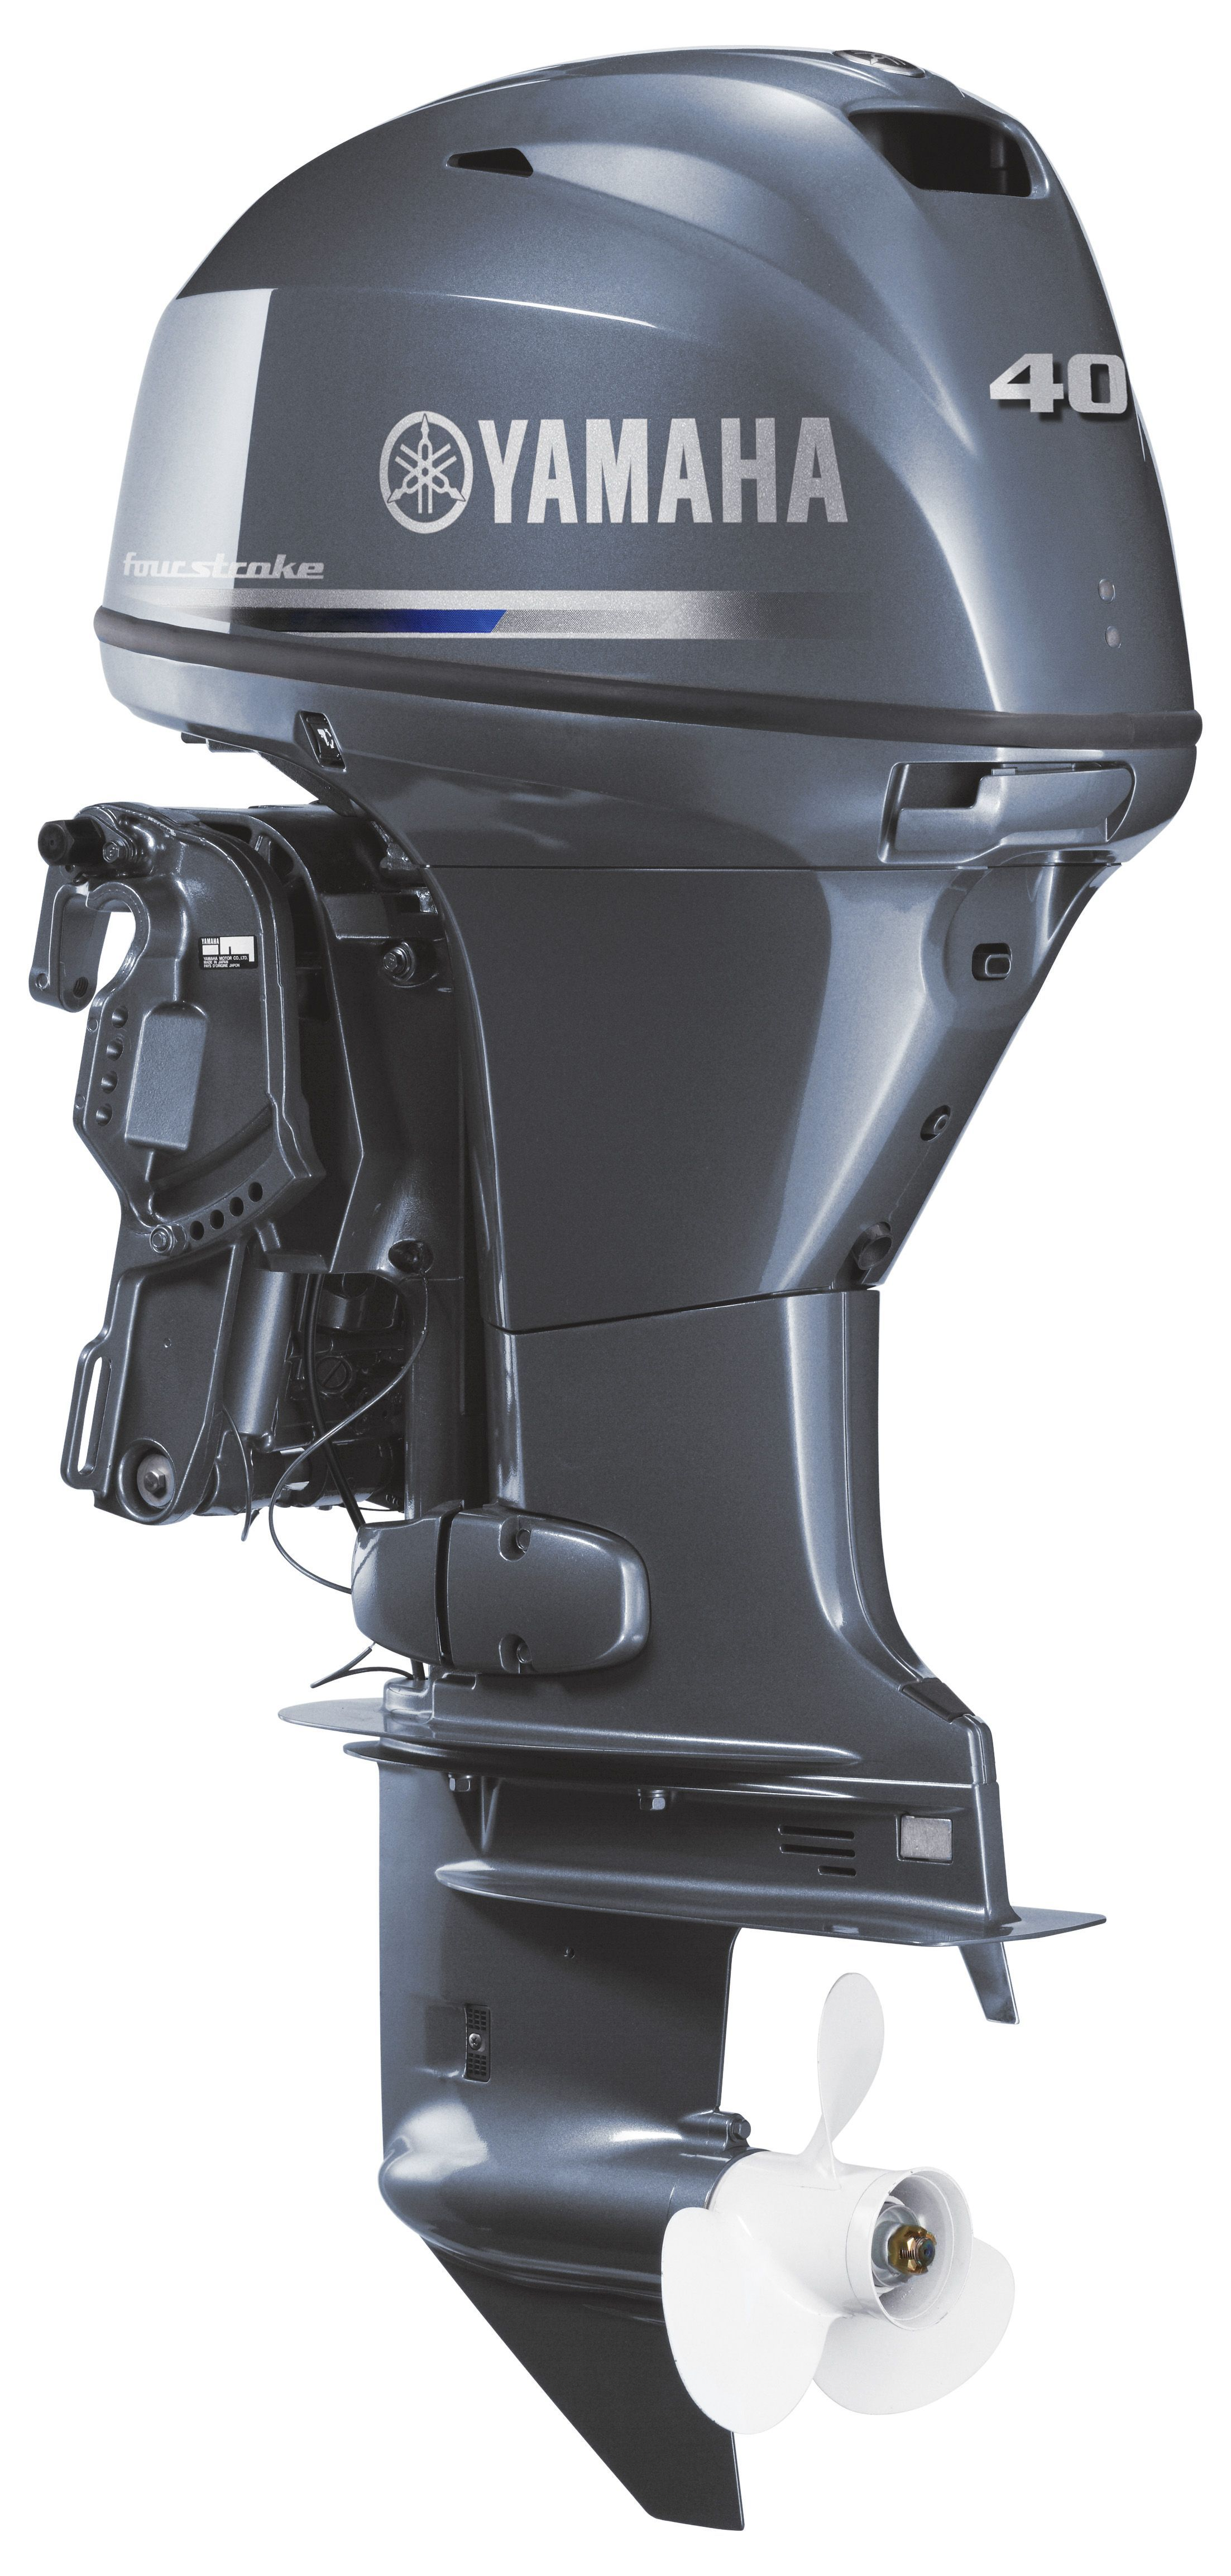 Review Yamaha 40 Hp Outboard Yamaha 40 Hp Outboard 2 Stroke Yamaha 40 Hp Outboard Carburetor Yamaha 40 Hp Outboard For Sale Yam Outboard Motors Yamaha Outboard